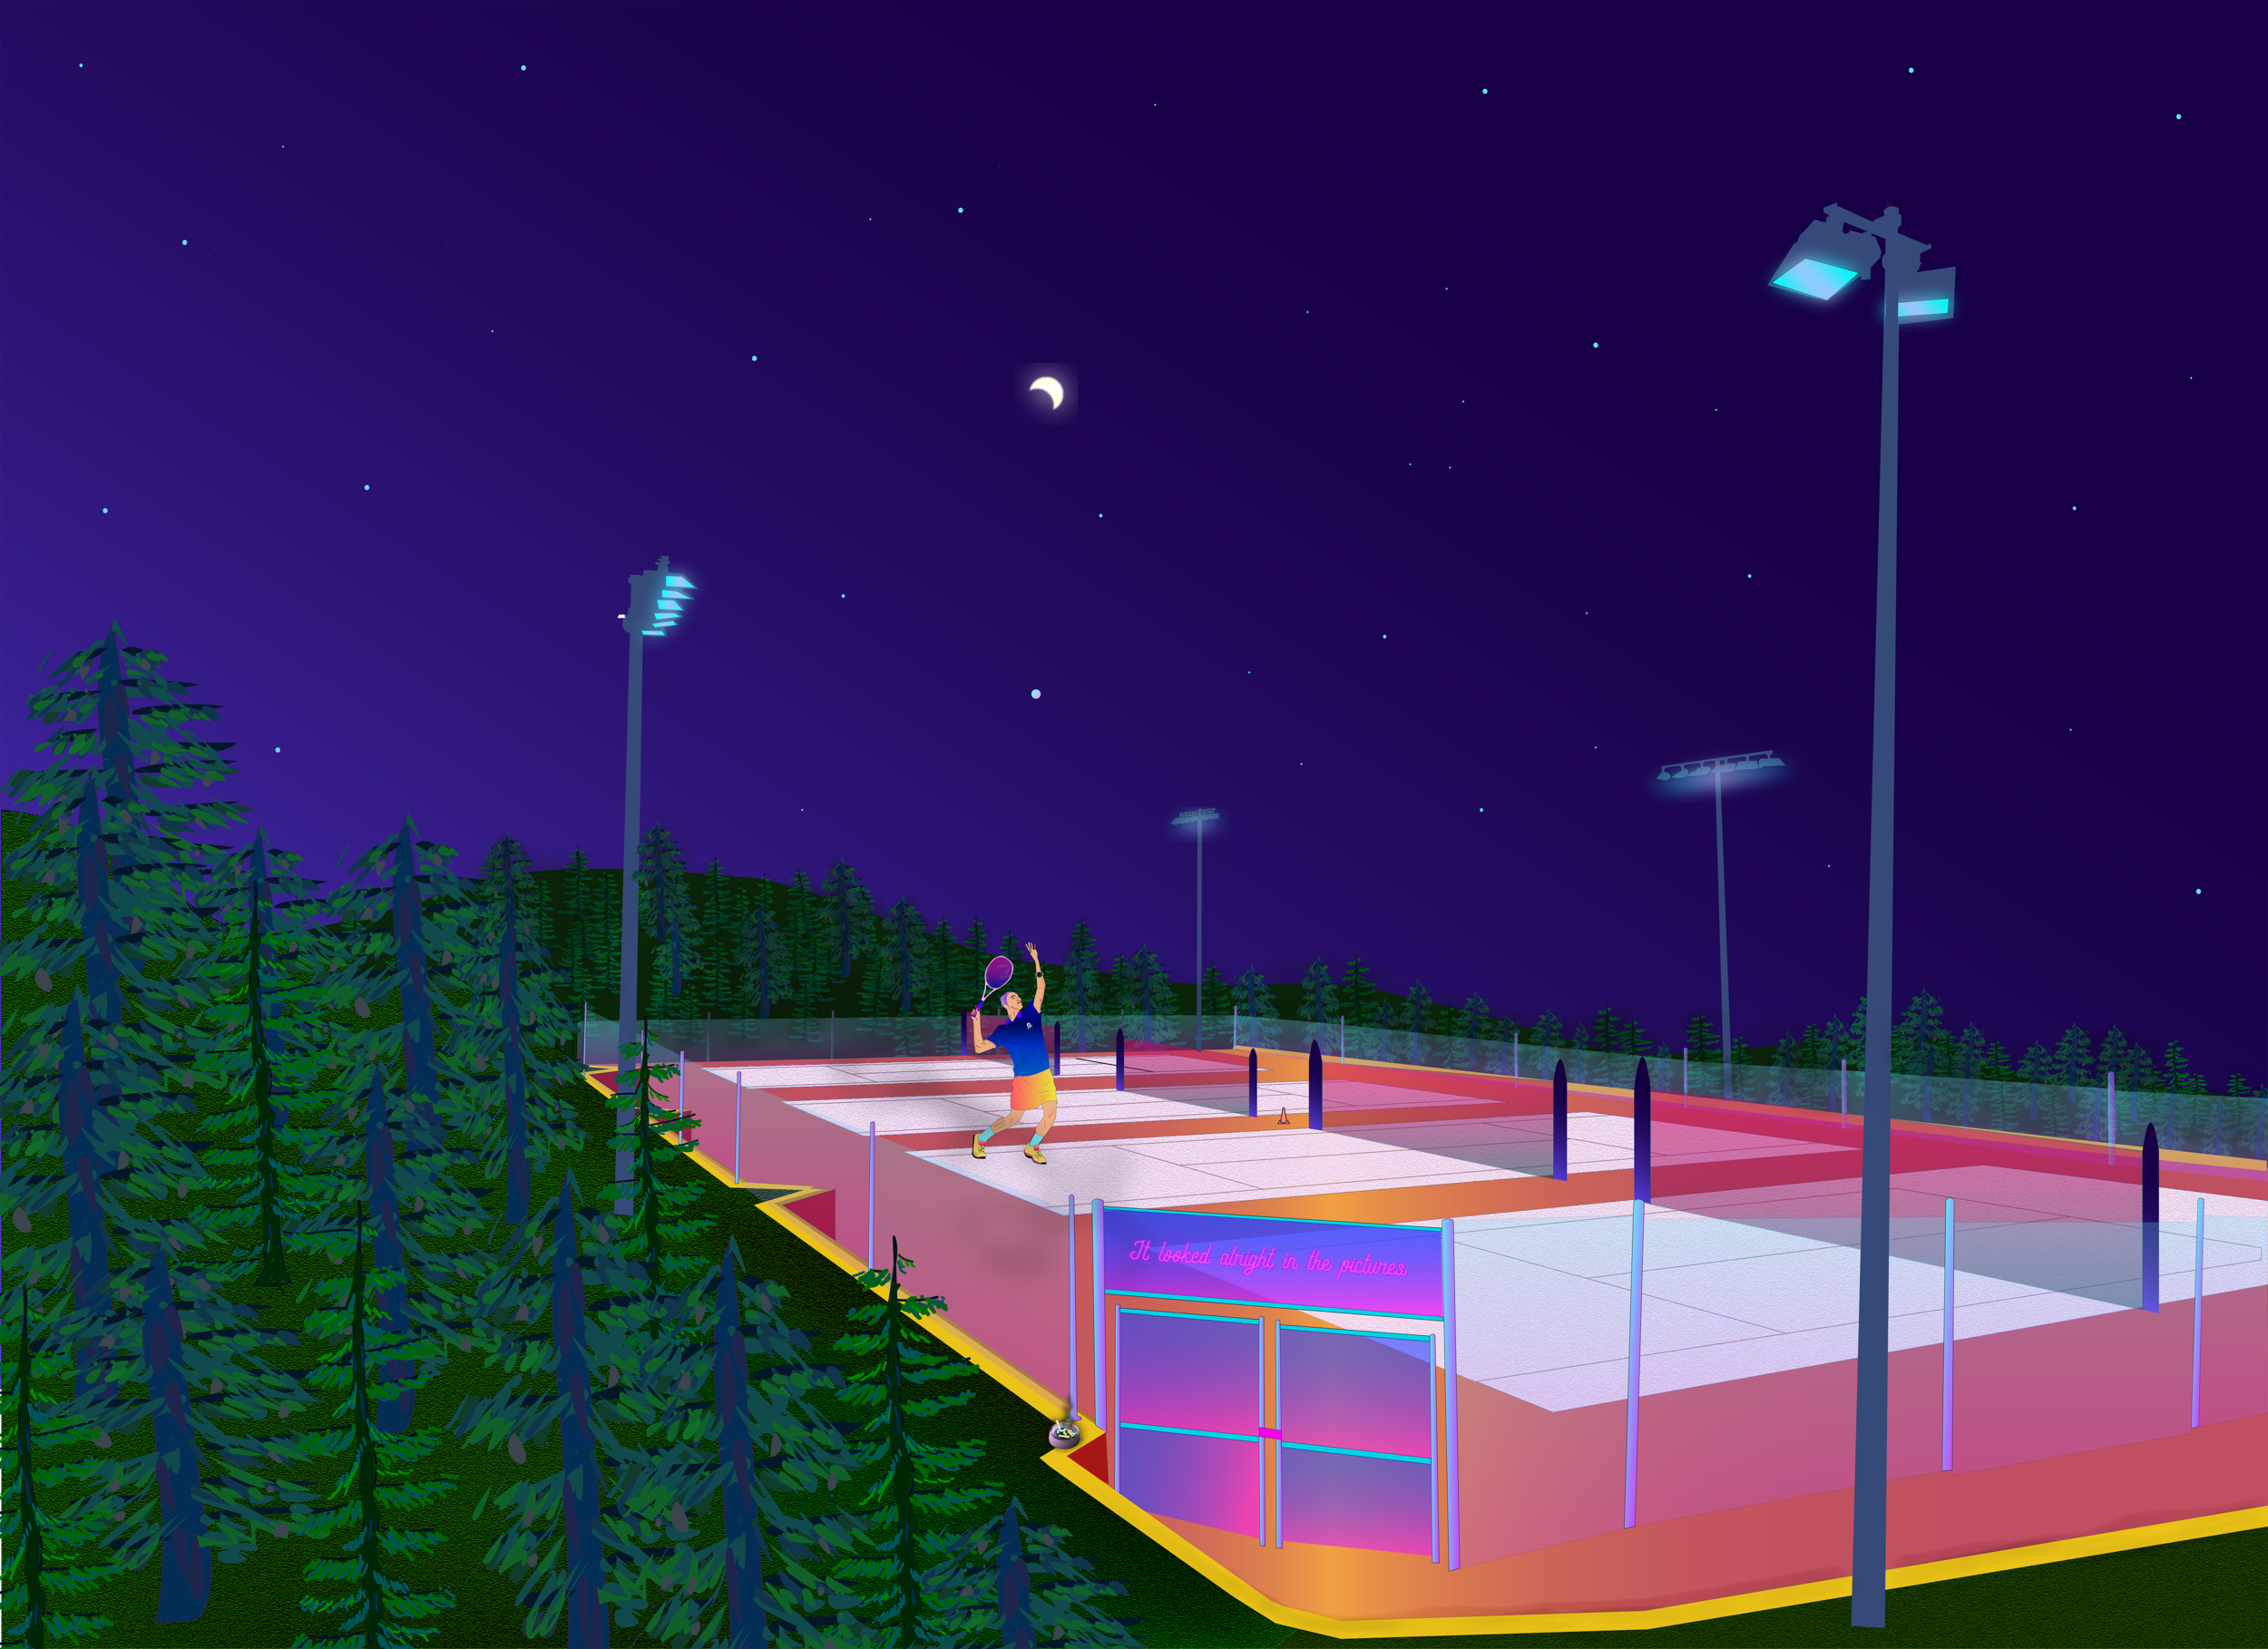 tennis courts 14.6mb.png